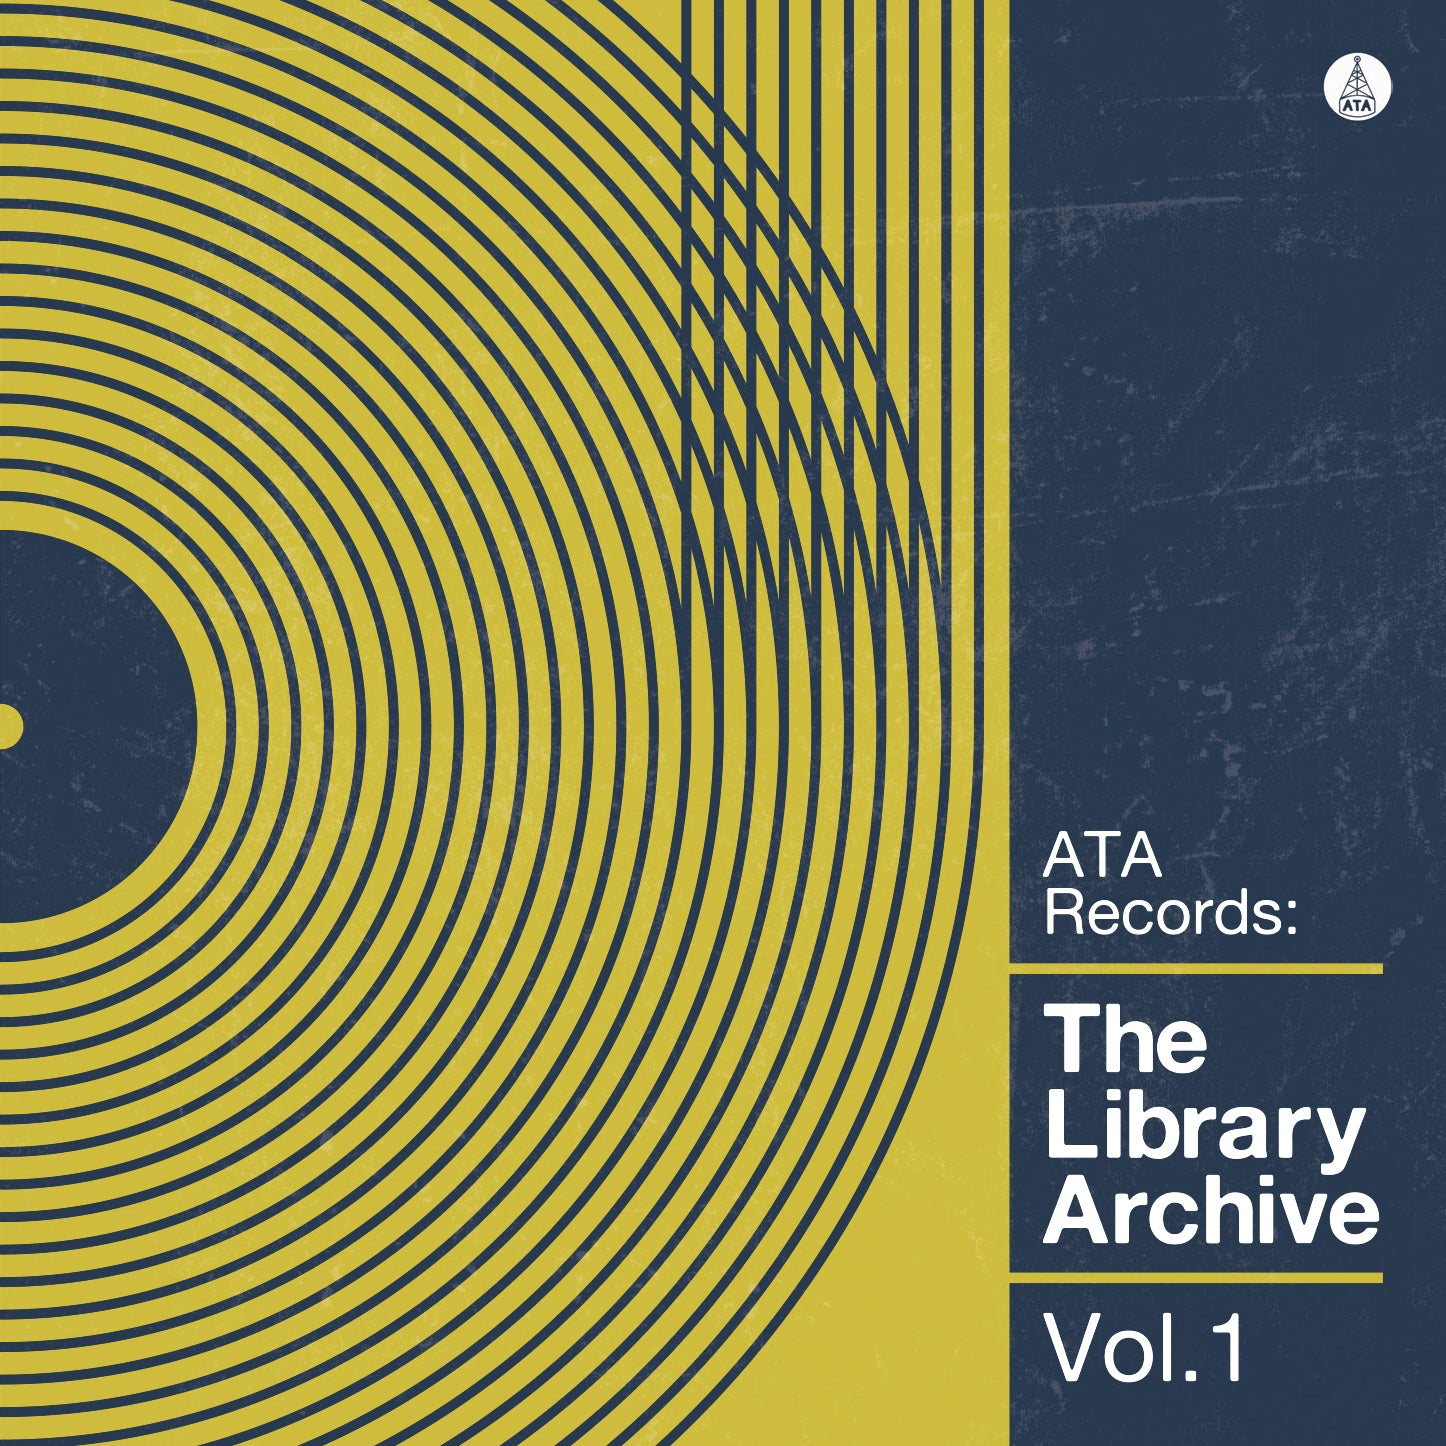 ATA Records: The Library Archive Vol. 1